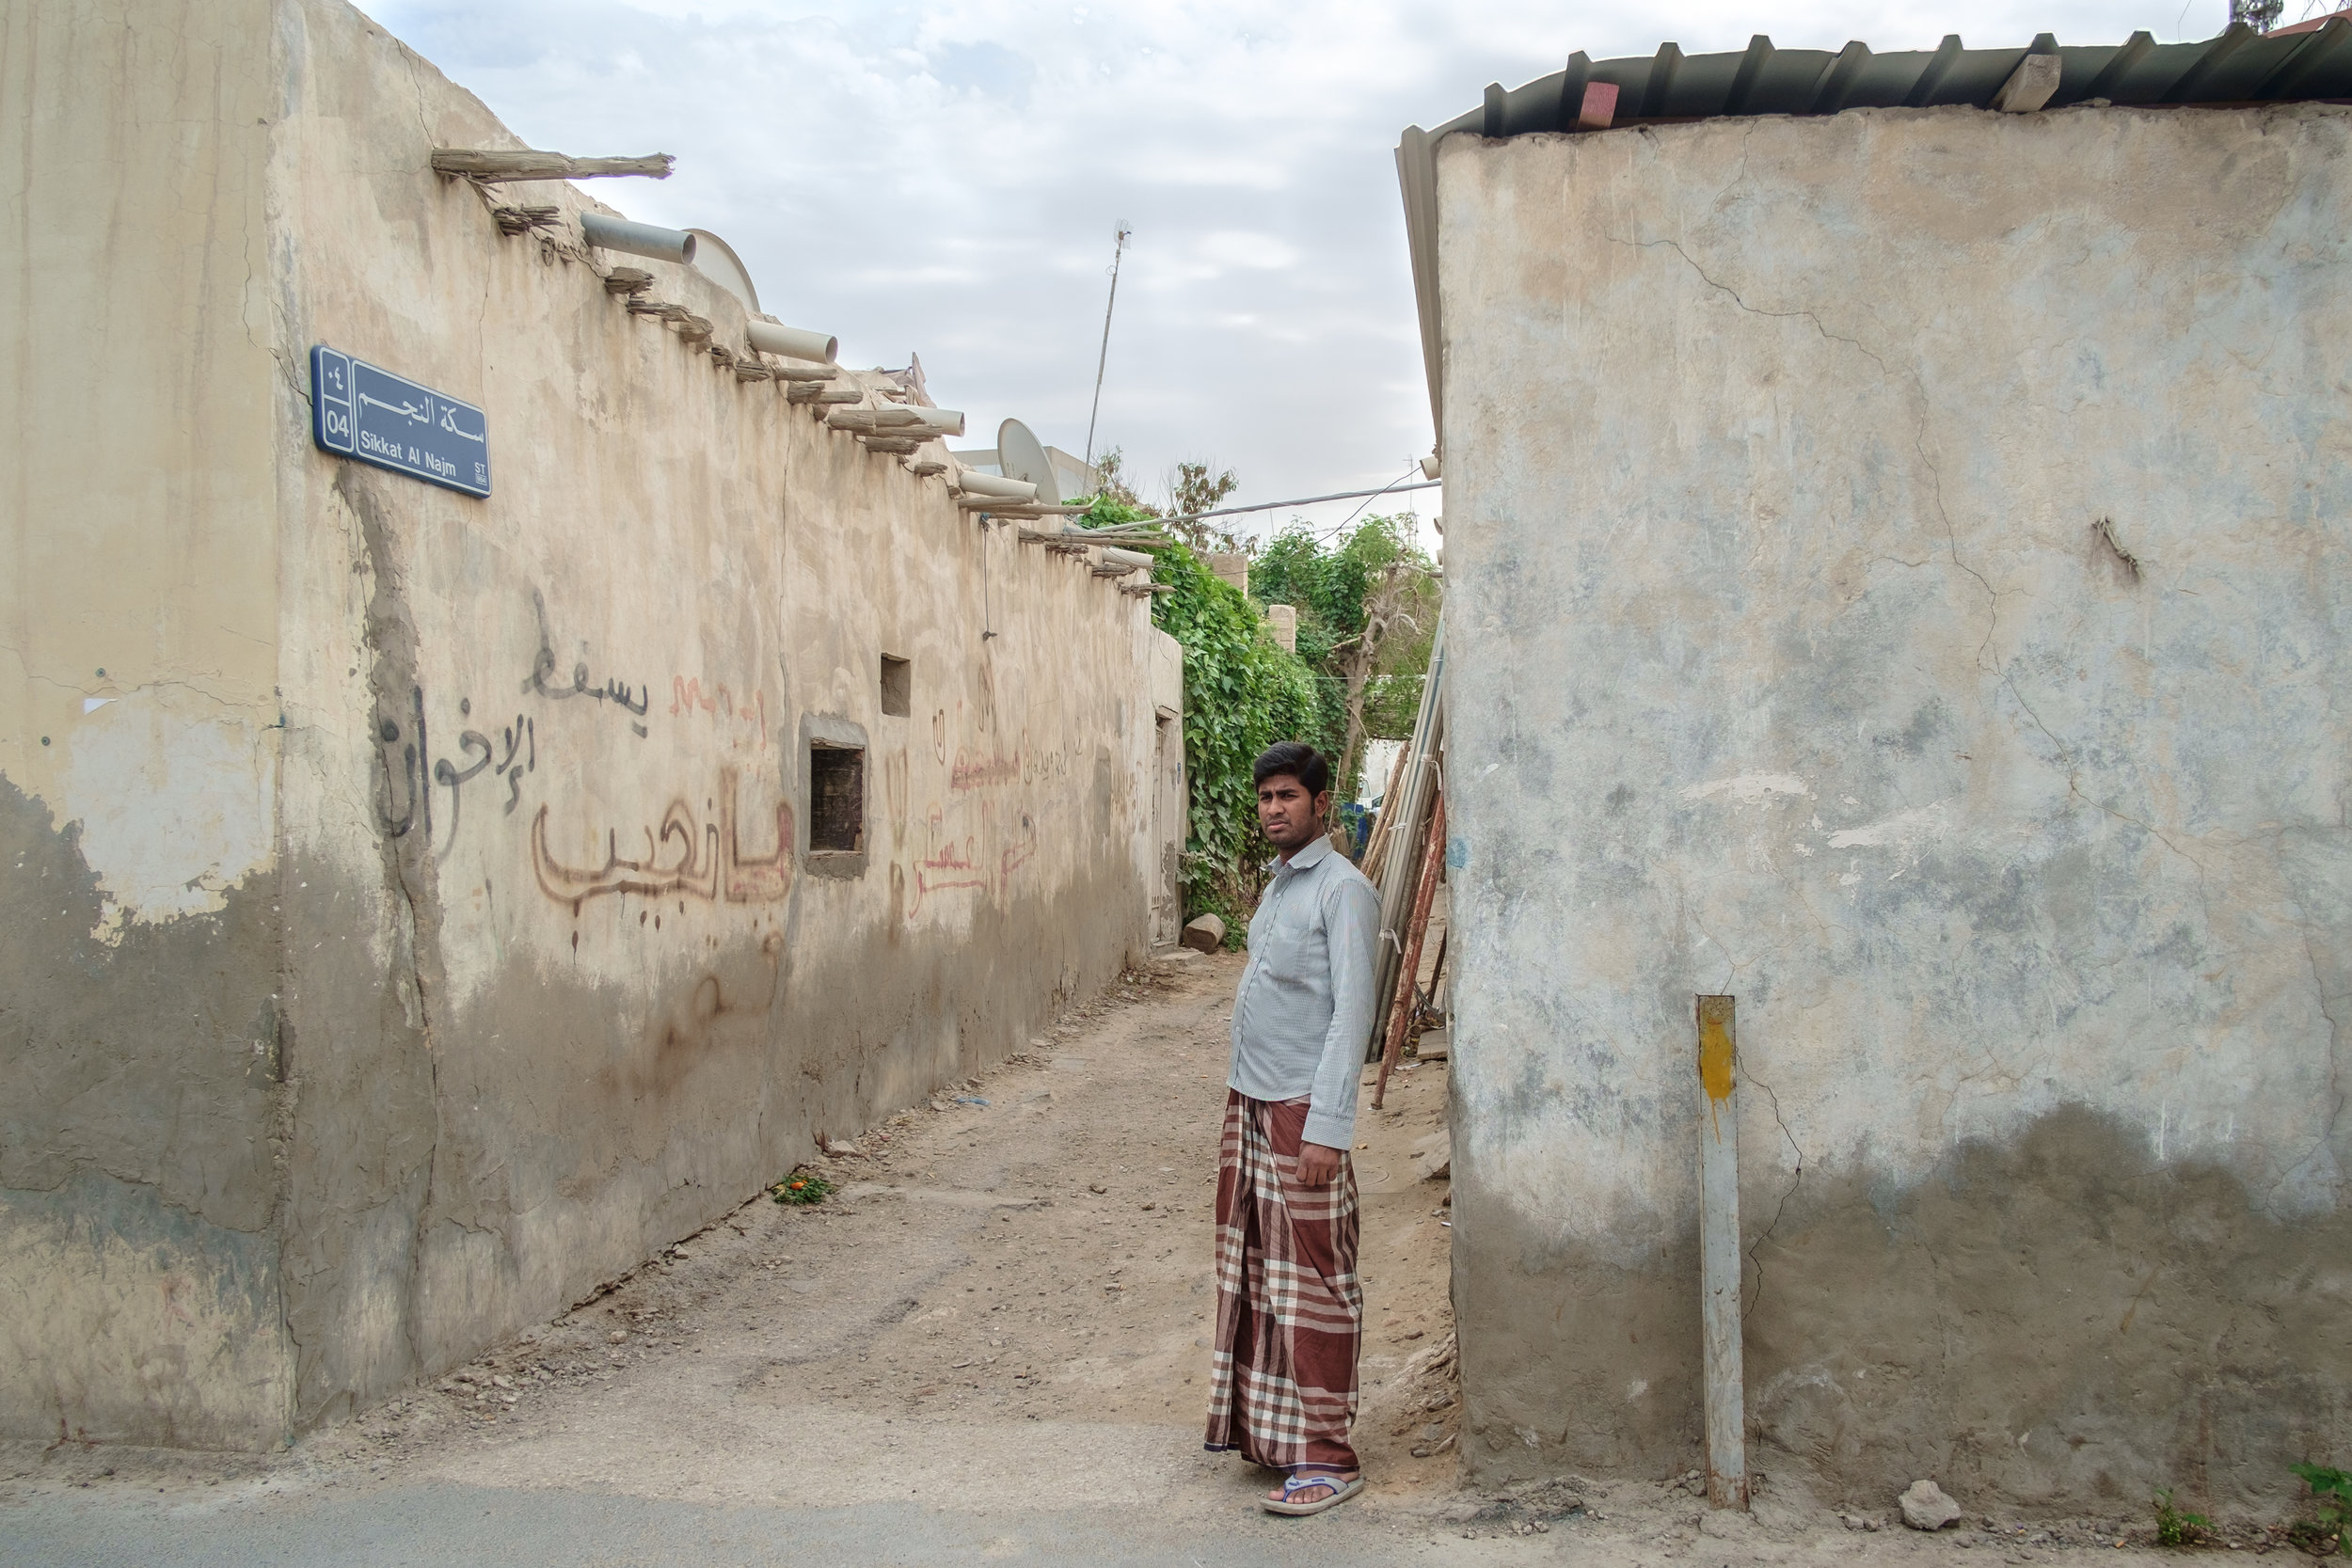 A blue-collar expat is seen in the old Musheireb neighborhood of Doha. Much of this neighborhood has been torn down, and the residents forcibly removed, in order to build the New Msheireb development. Qatar is in a race to revitalize and modernize in time to host the 2022 FIFA World Cup.